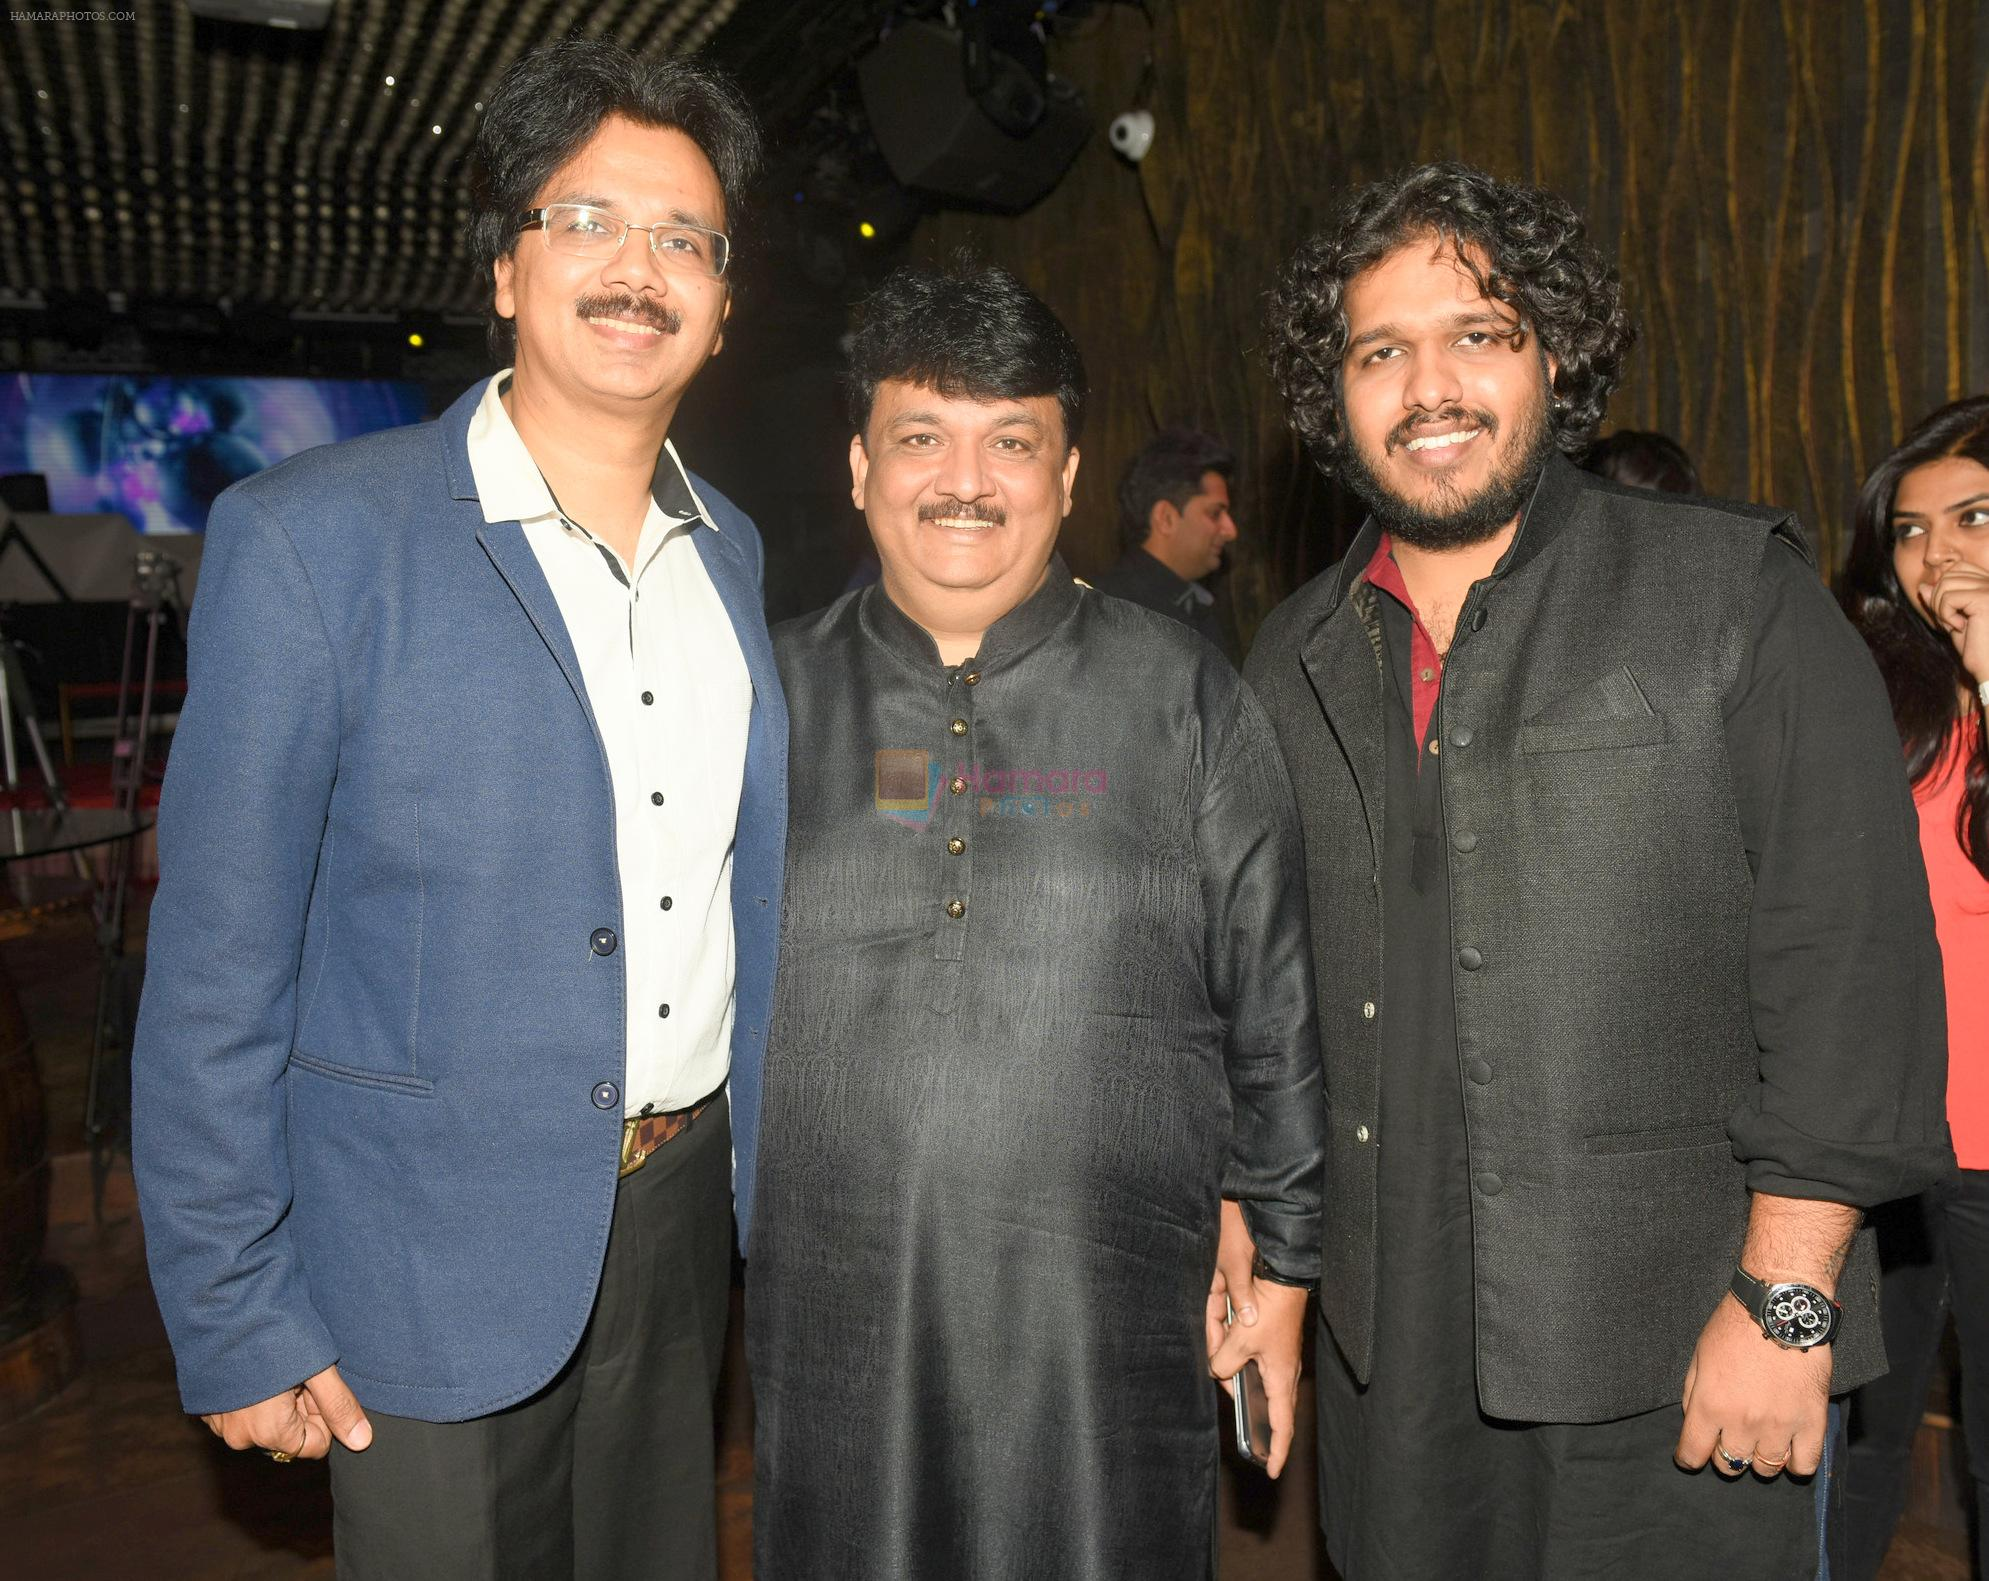 Jeetu  Shankar with Friends at the Launch of Youngest Music Composer in Golden Book of World Records 2016 Pranjali Sinha's new album MERE SAPNE